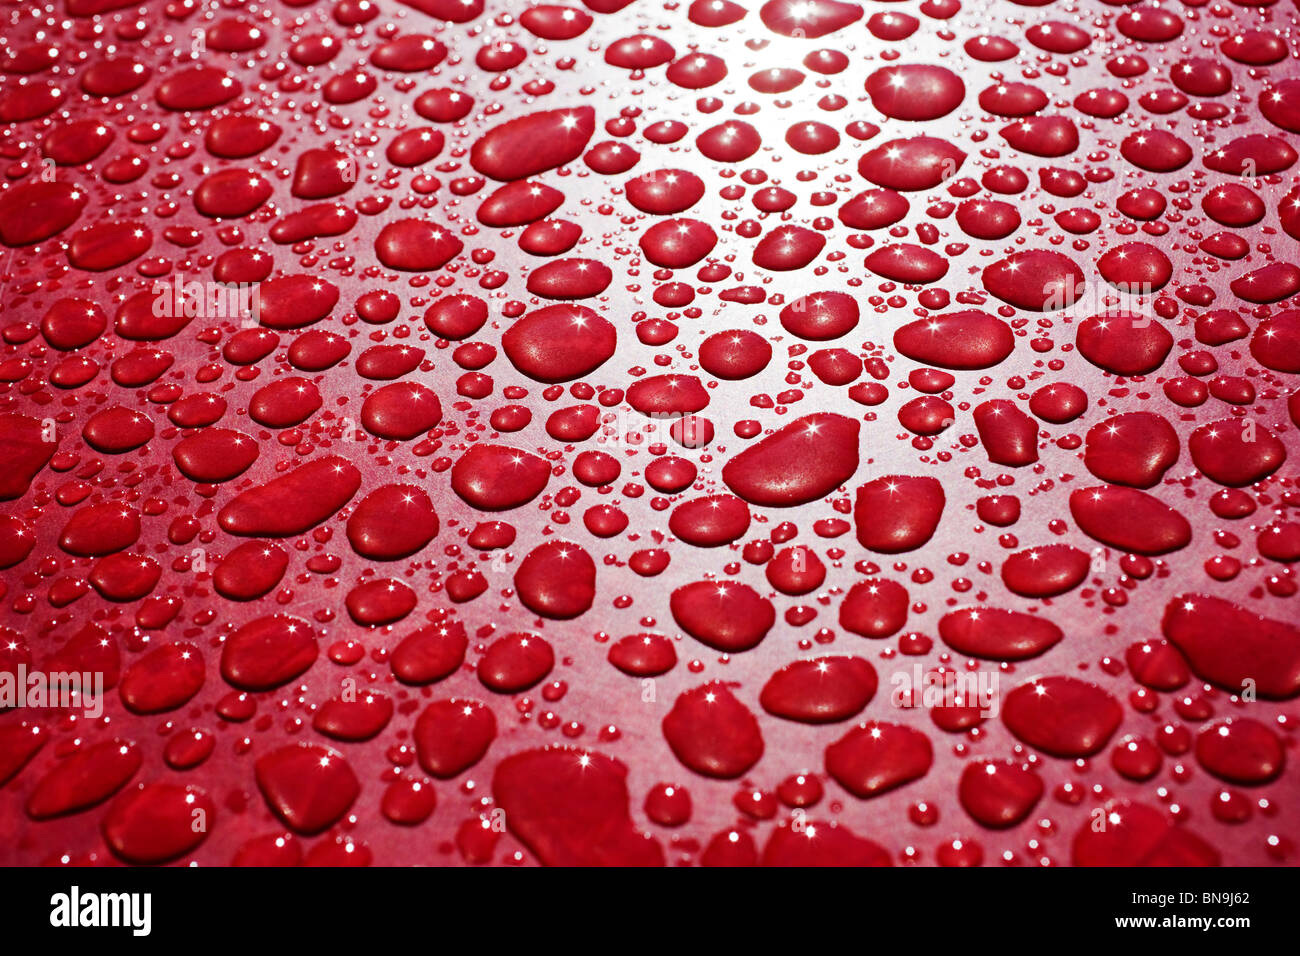 Close up macro photograph of rain drops on a red table Stock Photo